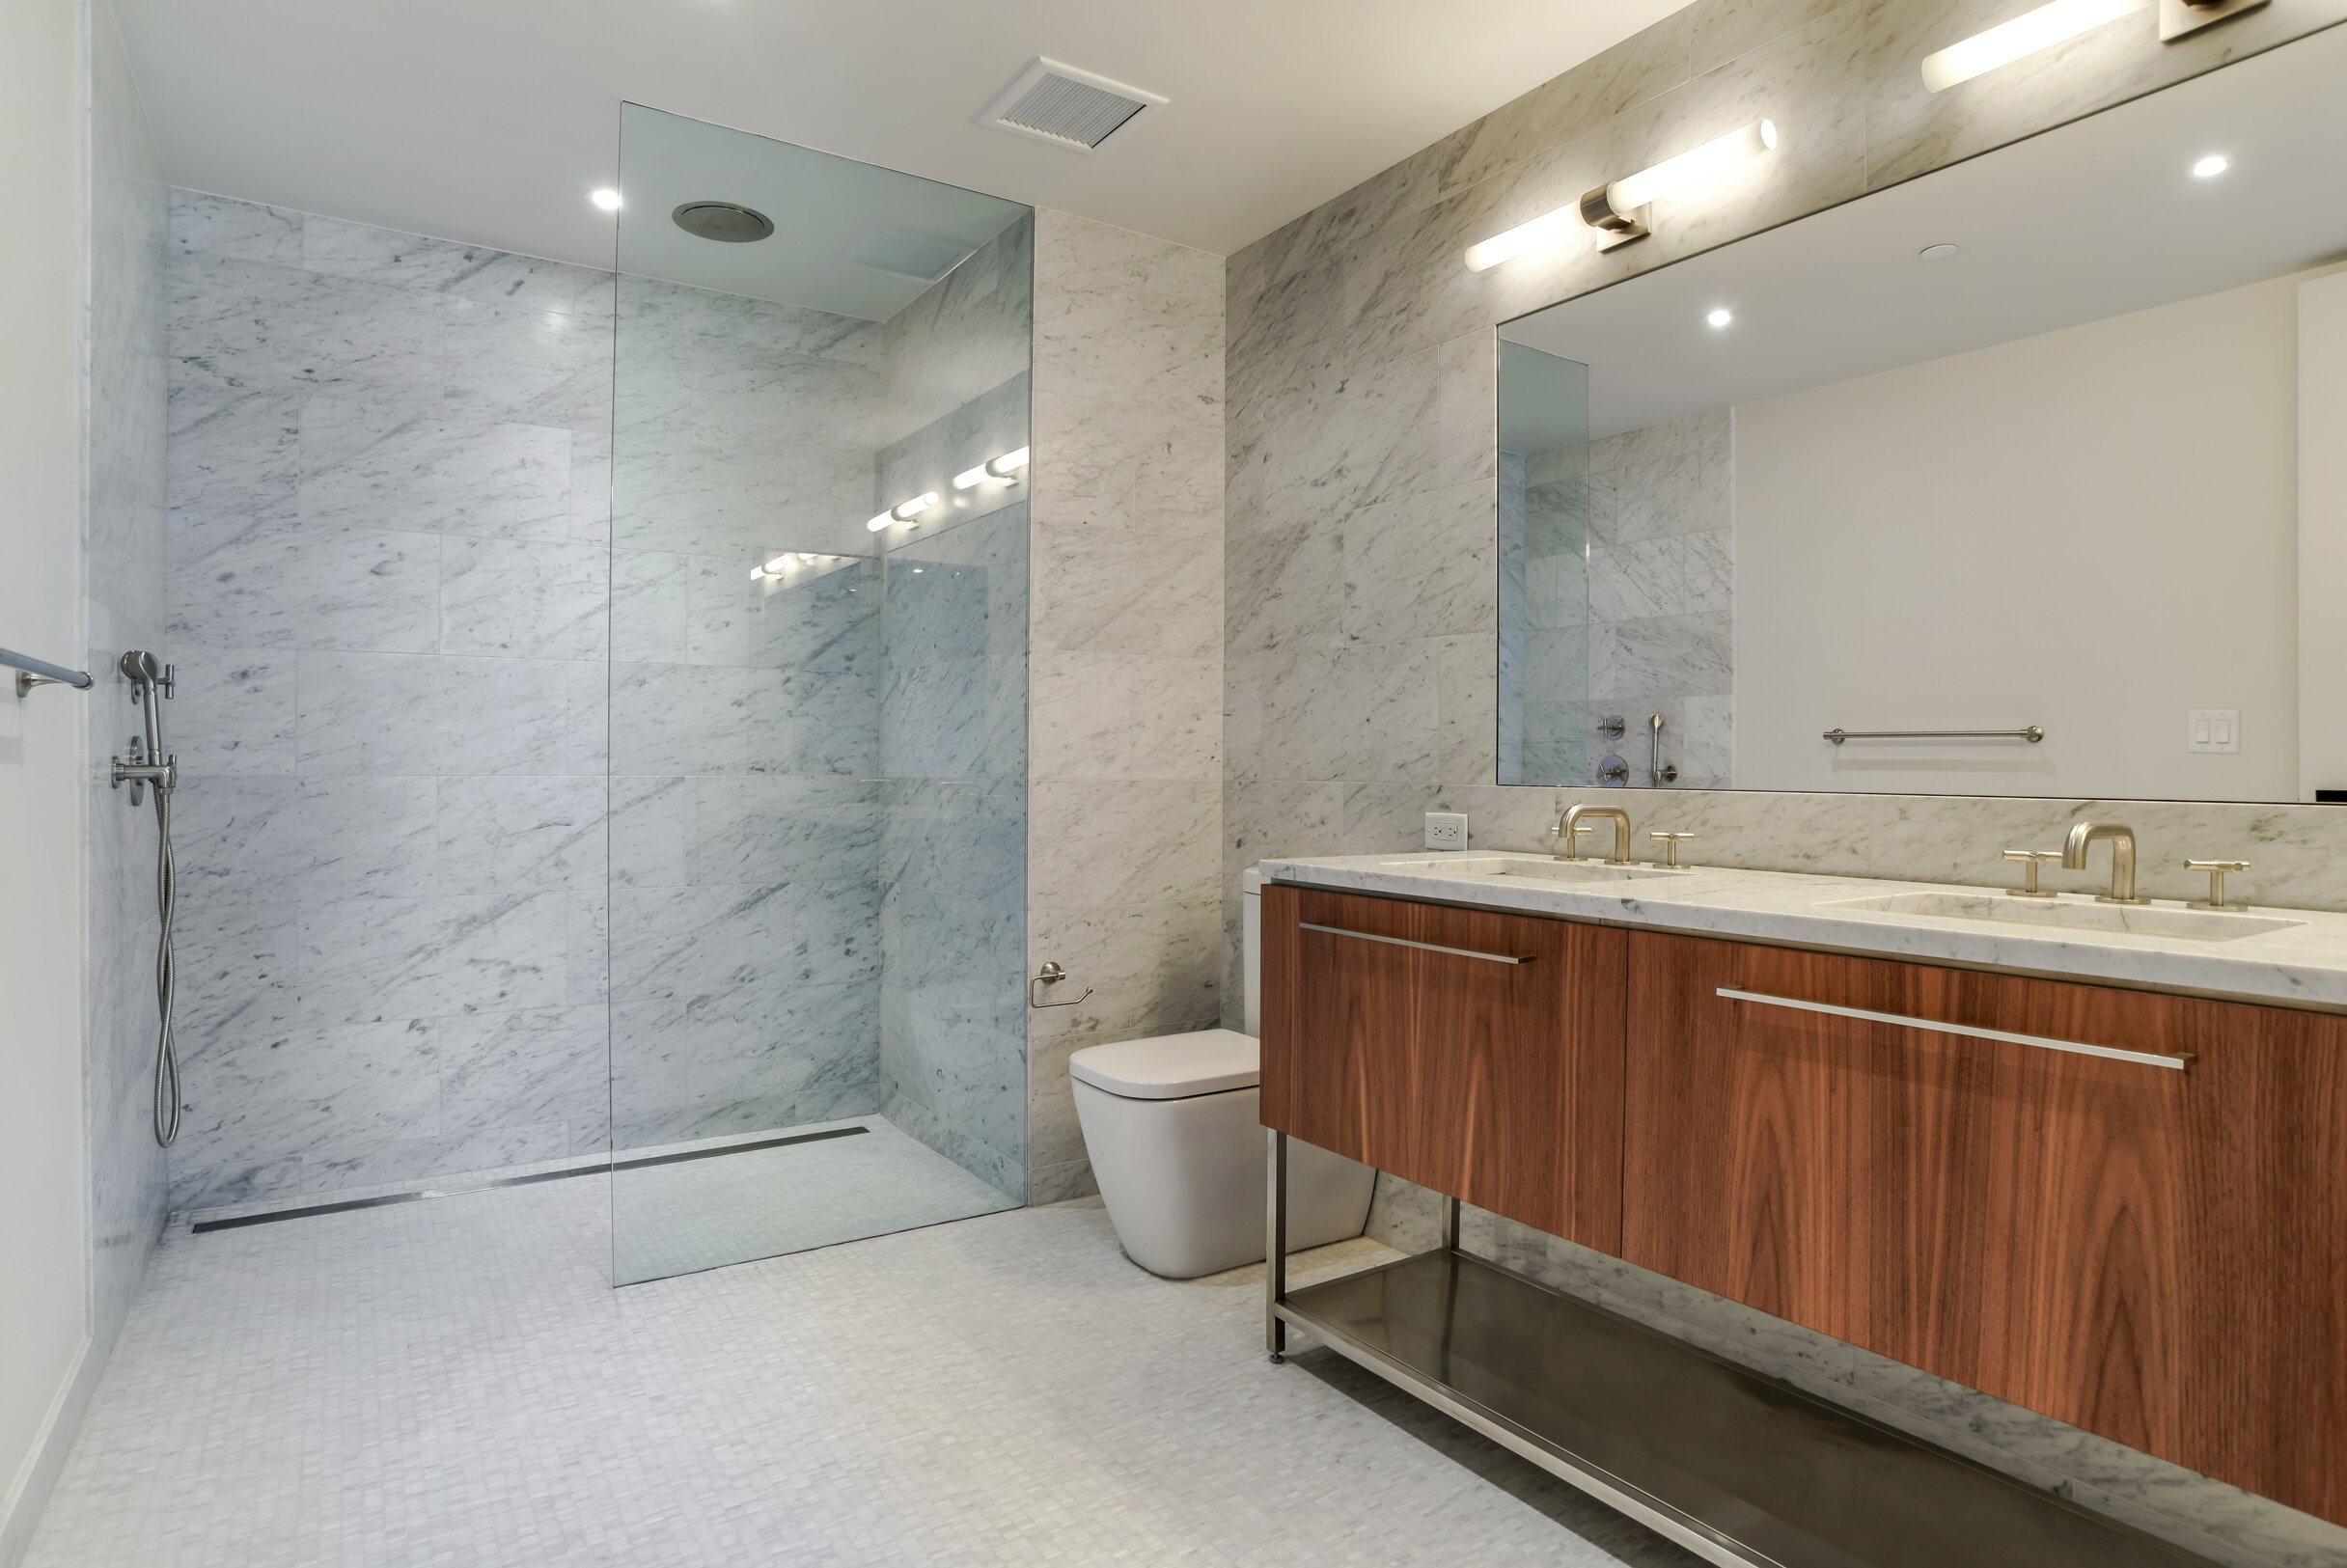 6_90FurmanSt_808814_13_MasterBathroom_HiRes.jpg